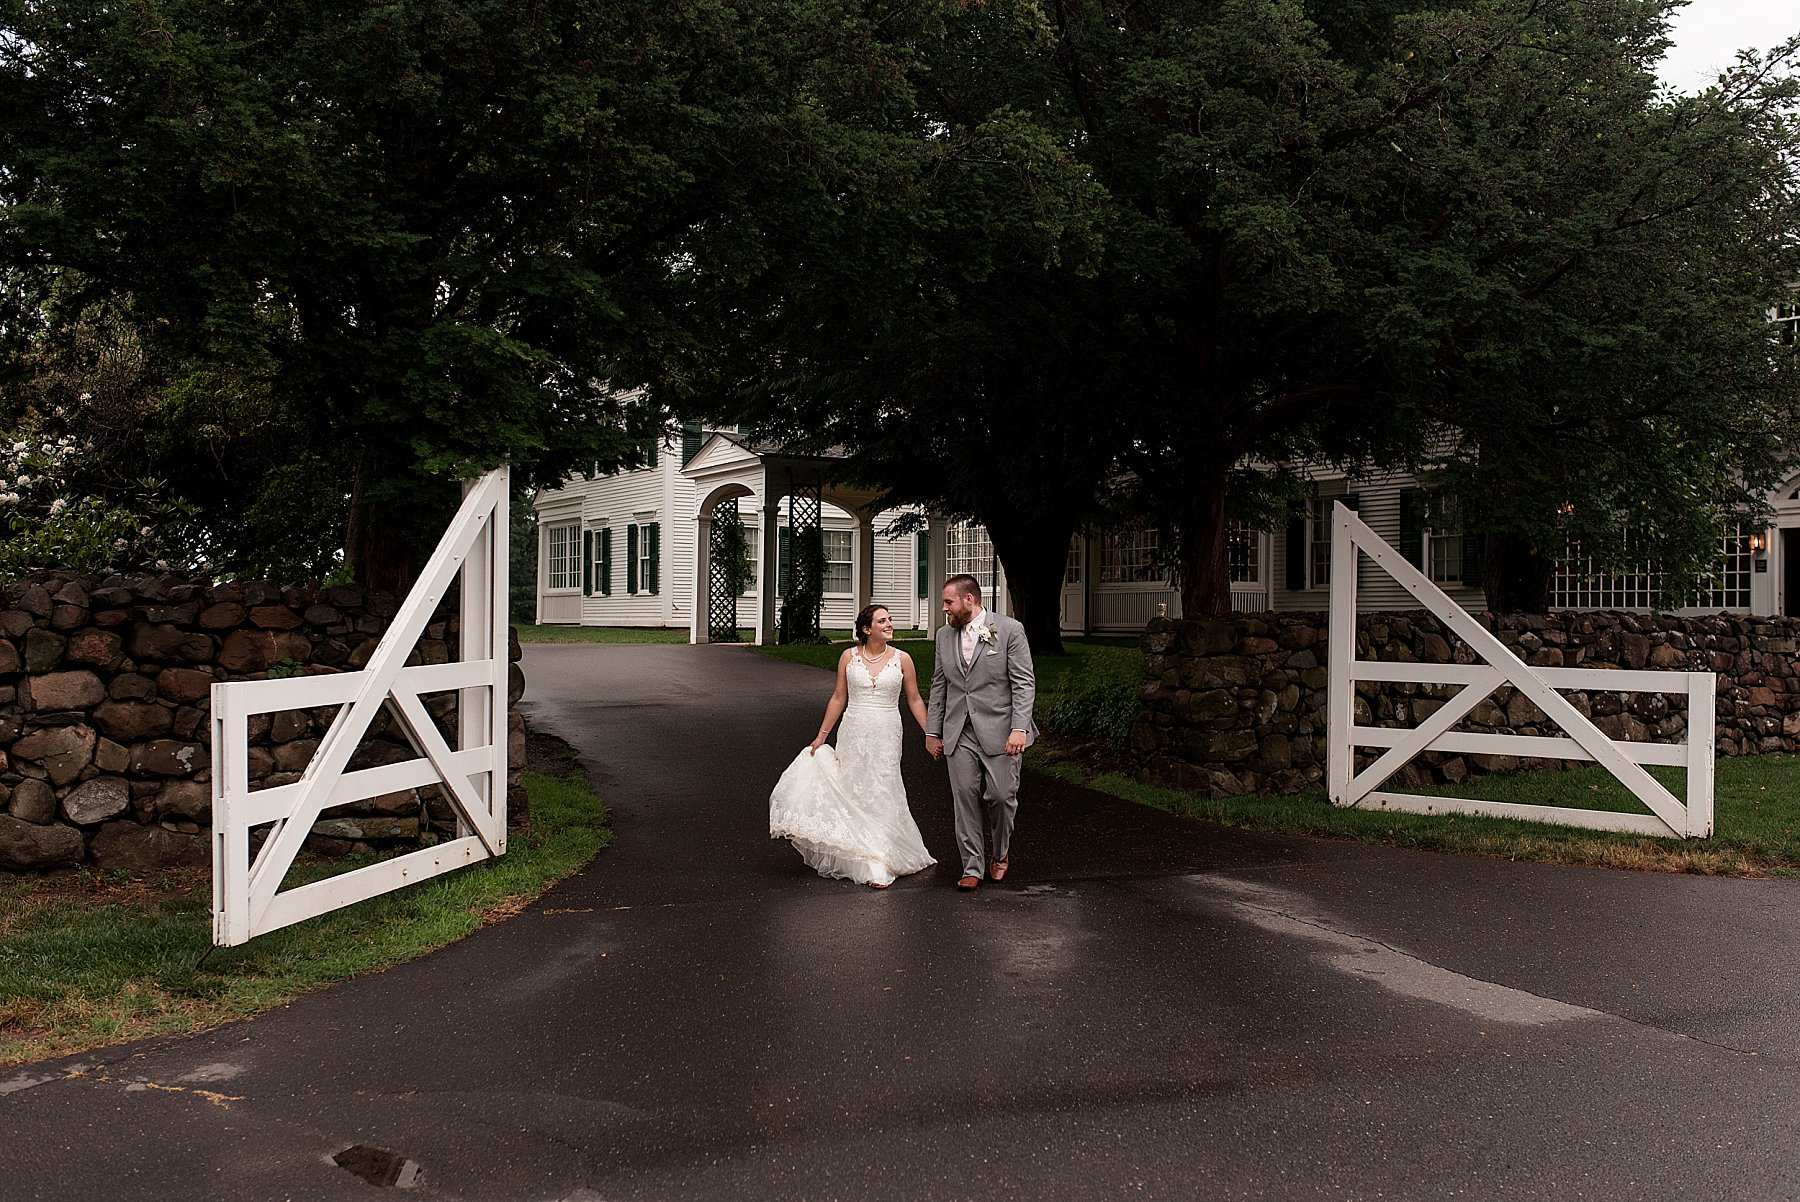 bride and groom walking in the rain on their wedding day in Connecticut